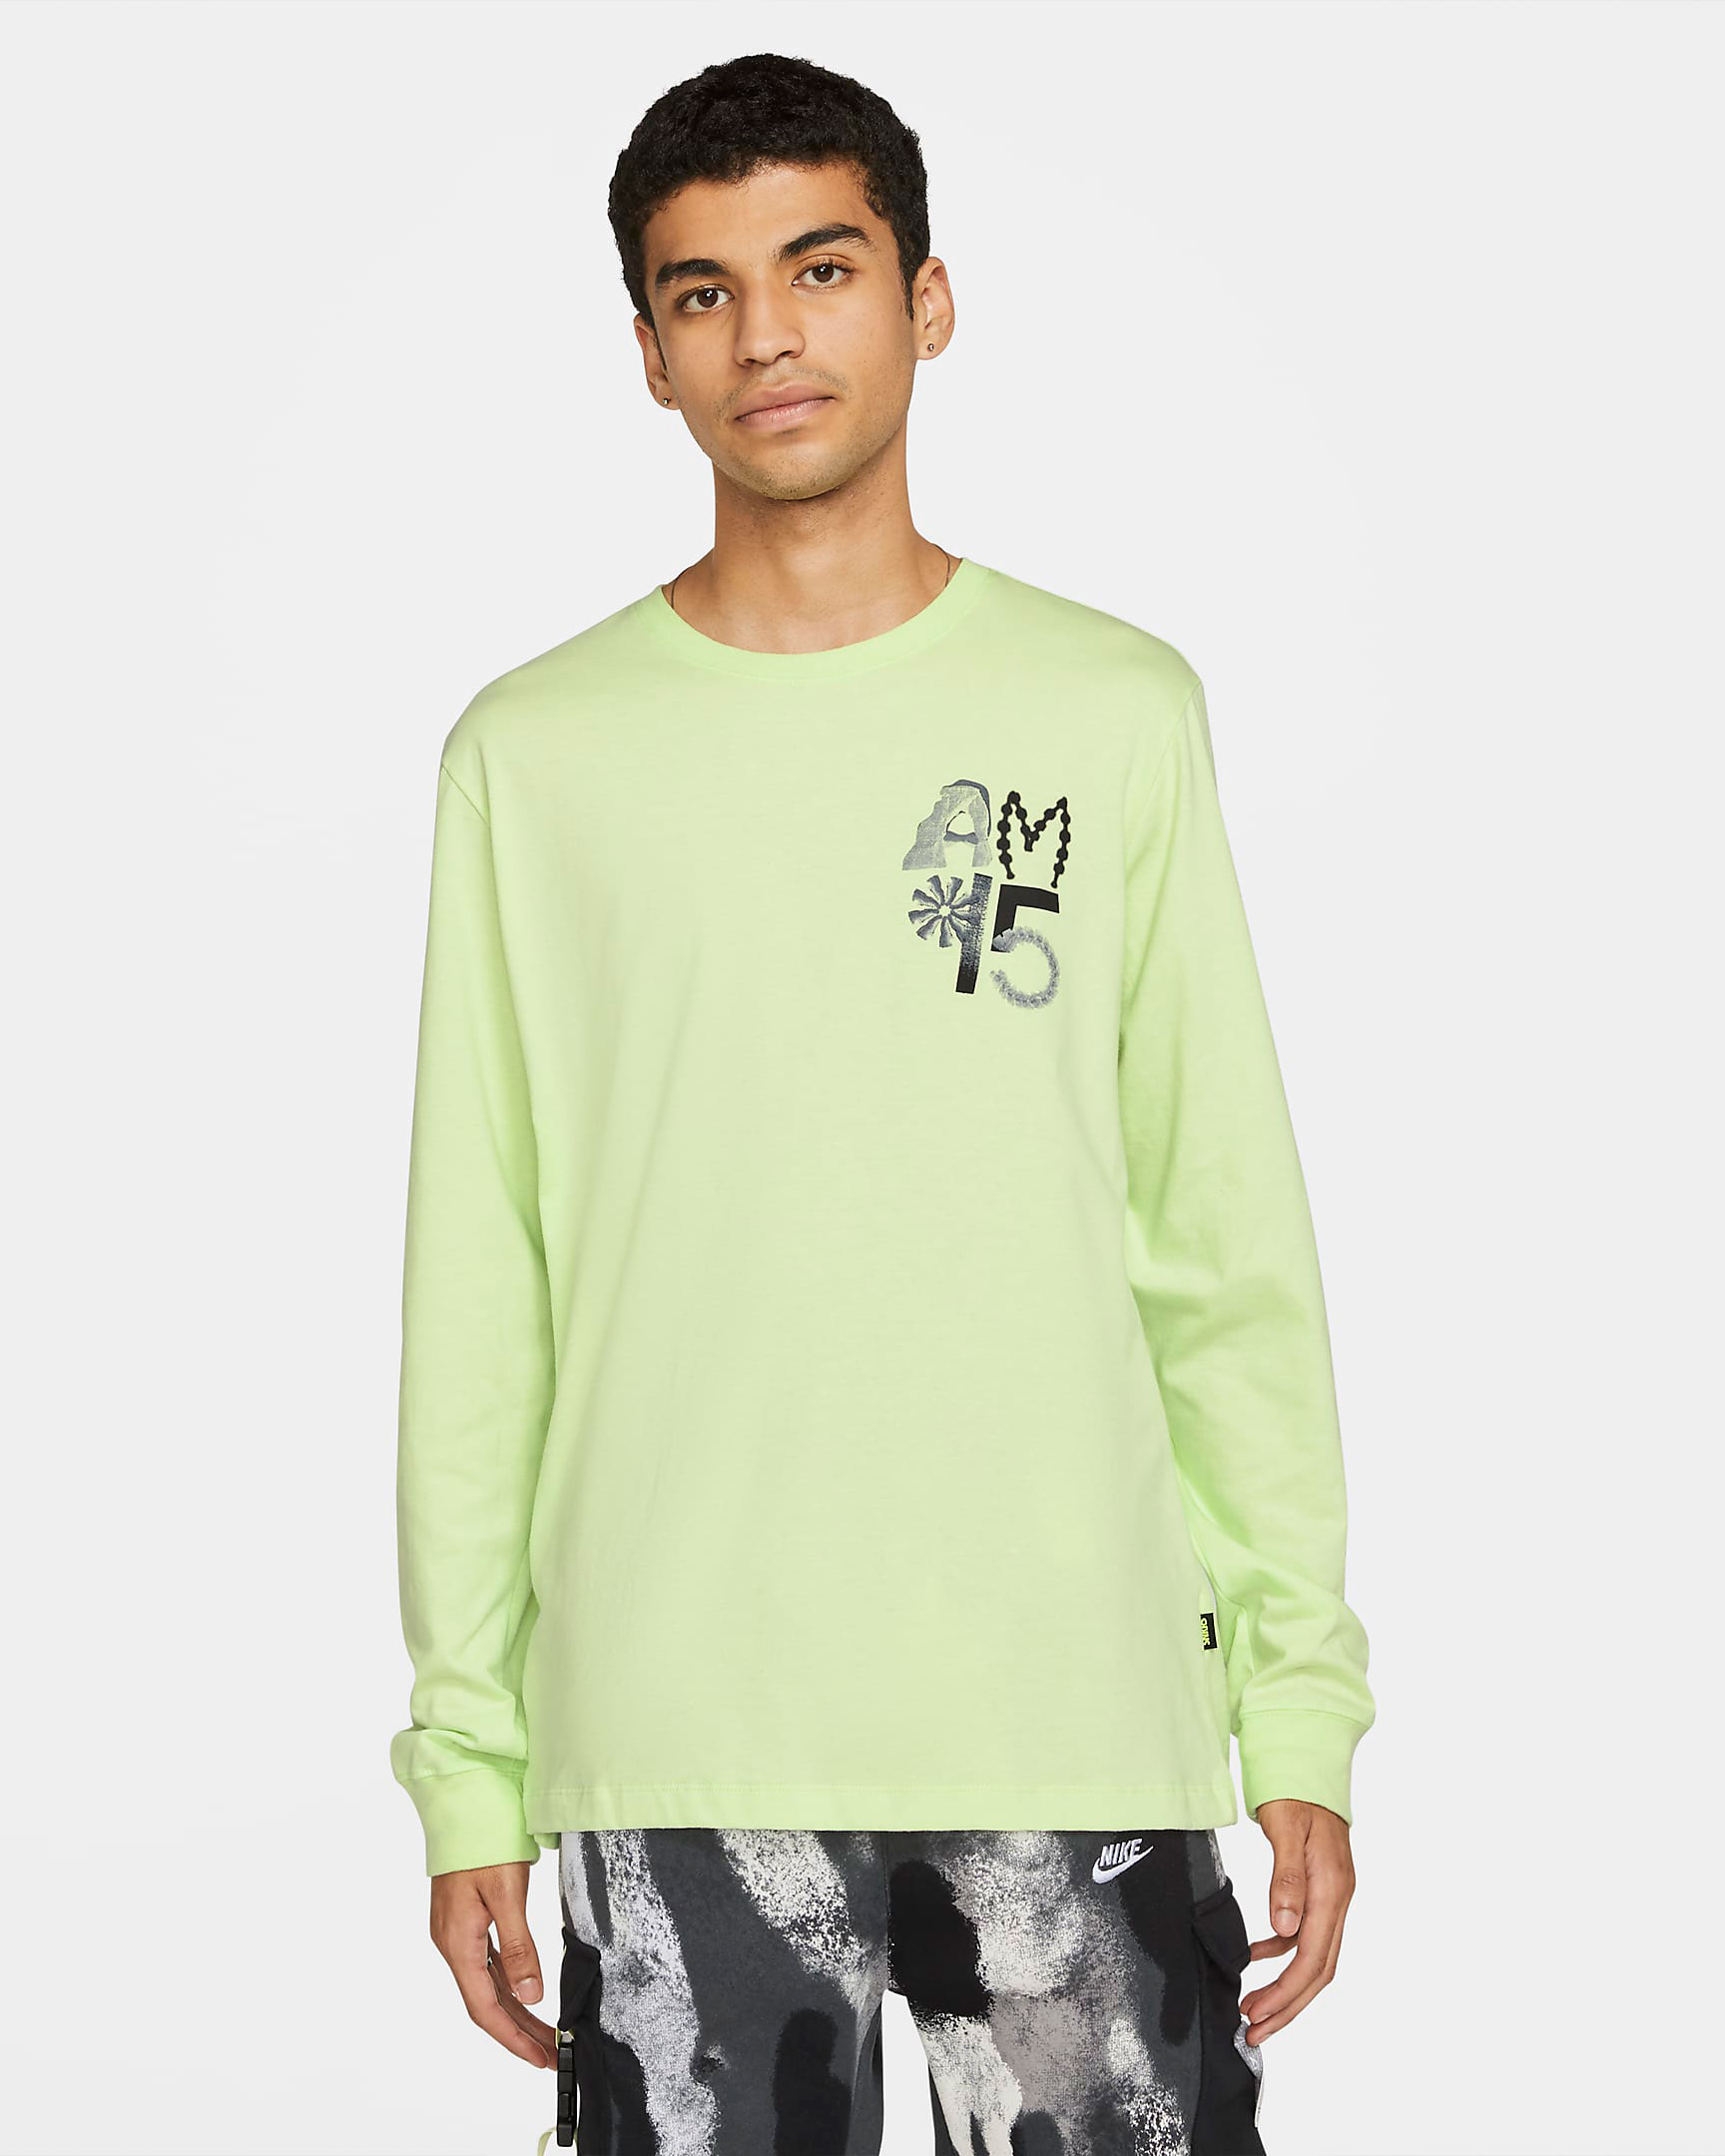 nike-air-max-95-neon-2020-long-sleeve-shirt-1